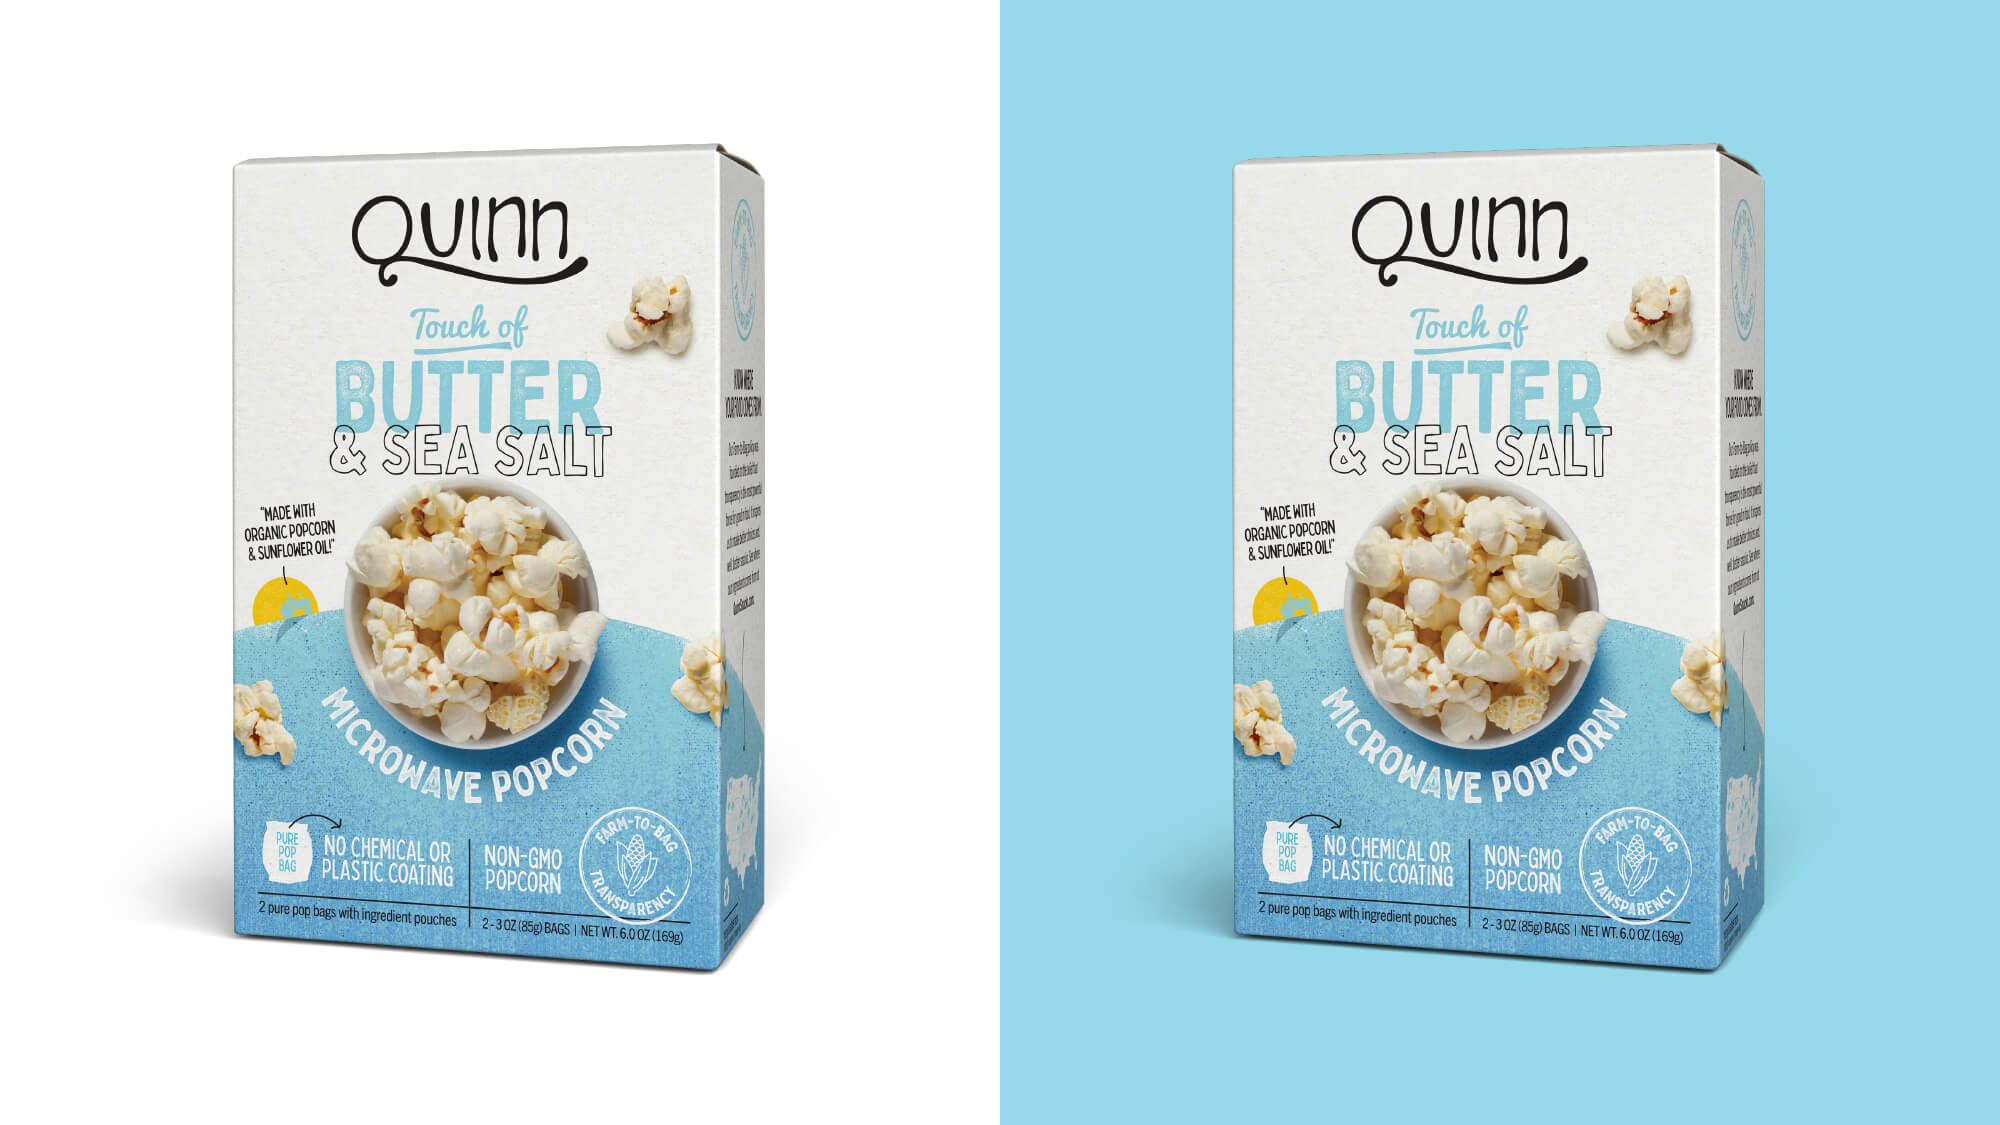 Quinn Popcorn Packaging - Touch Of Butter